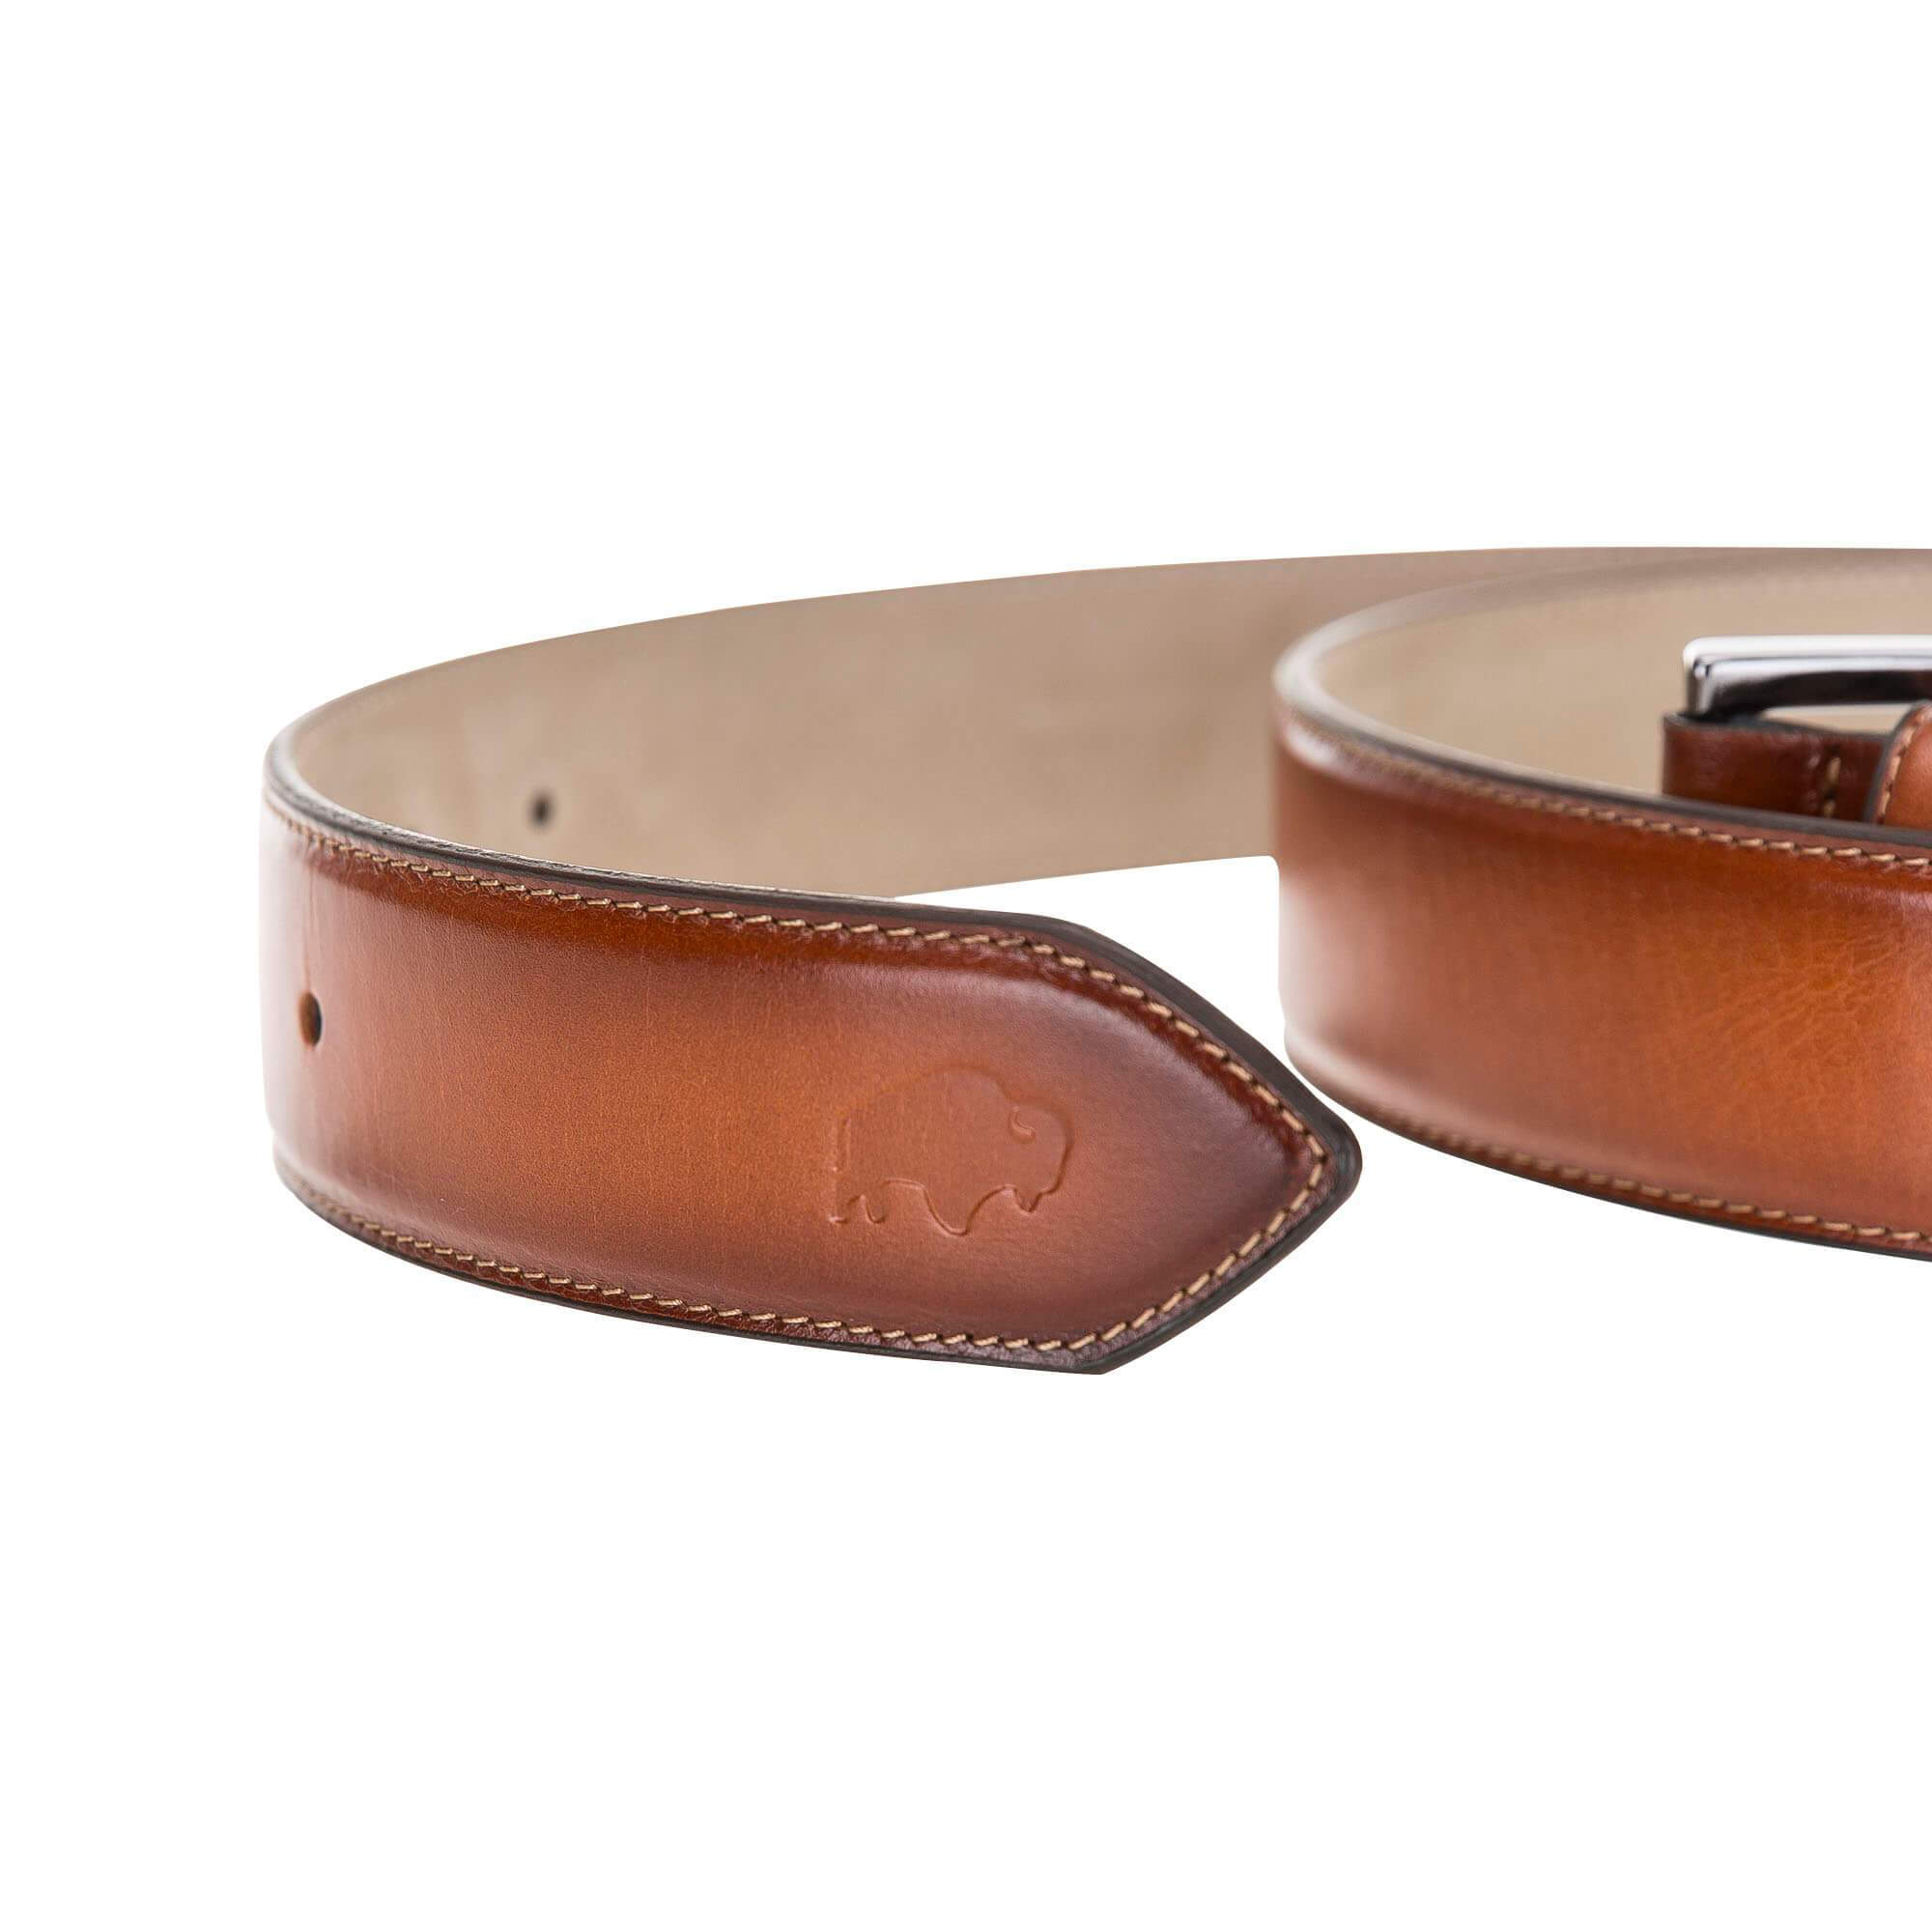 Cavalier Classic Leather Belt